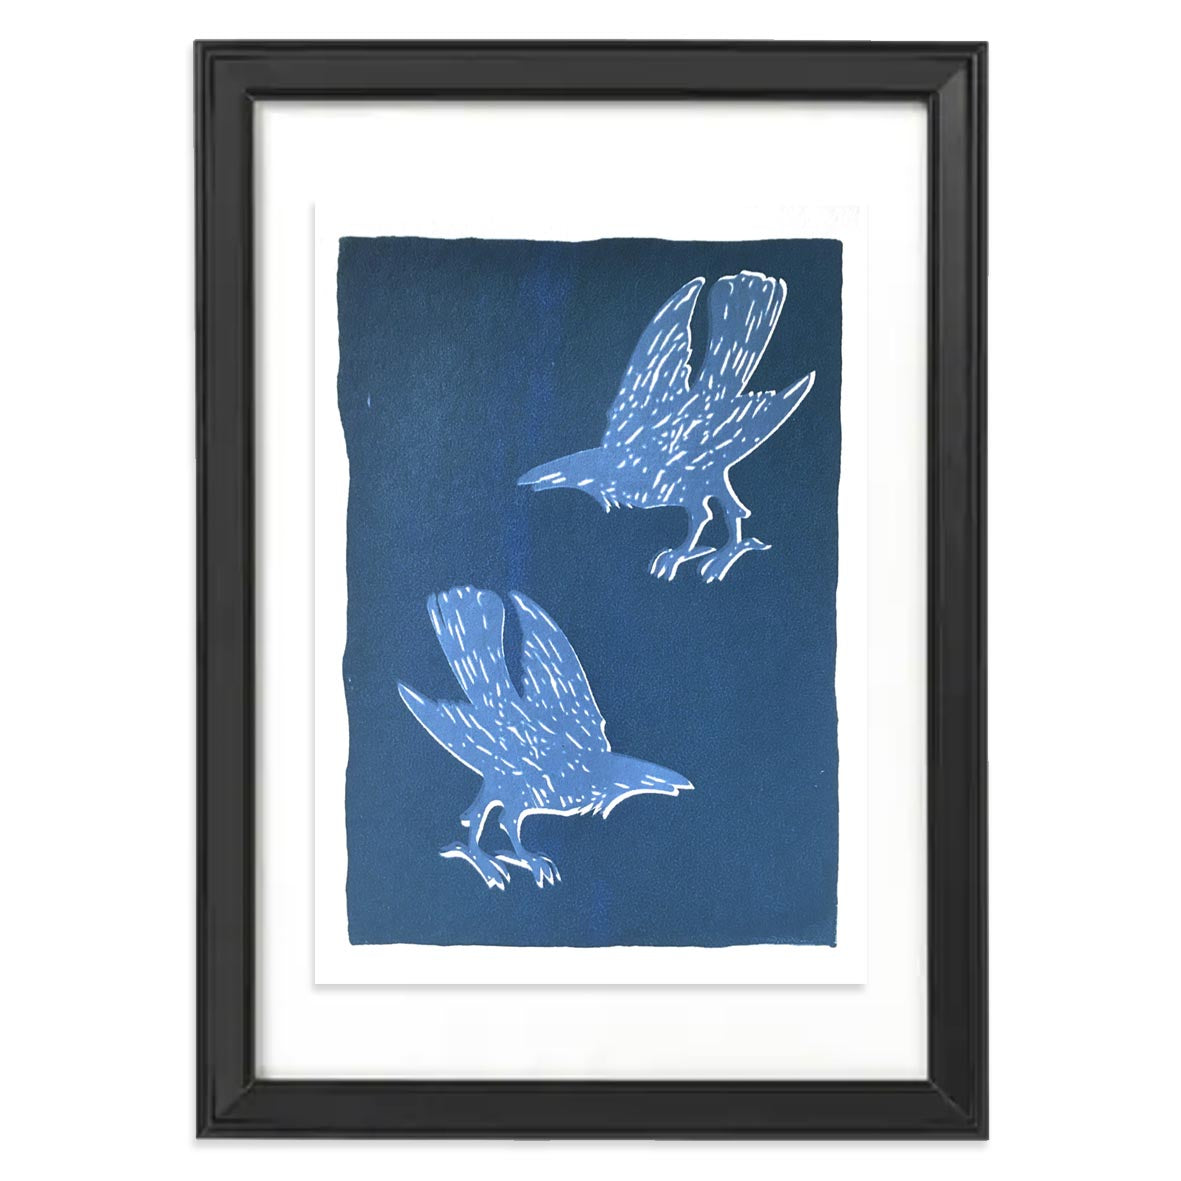 Blue screen print featuring two crows